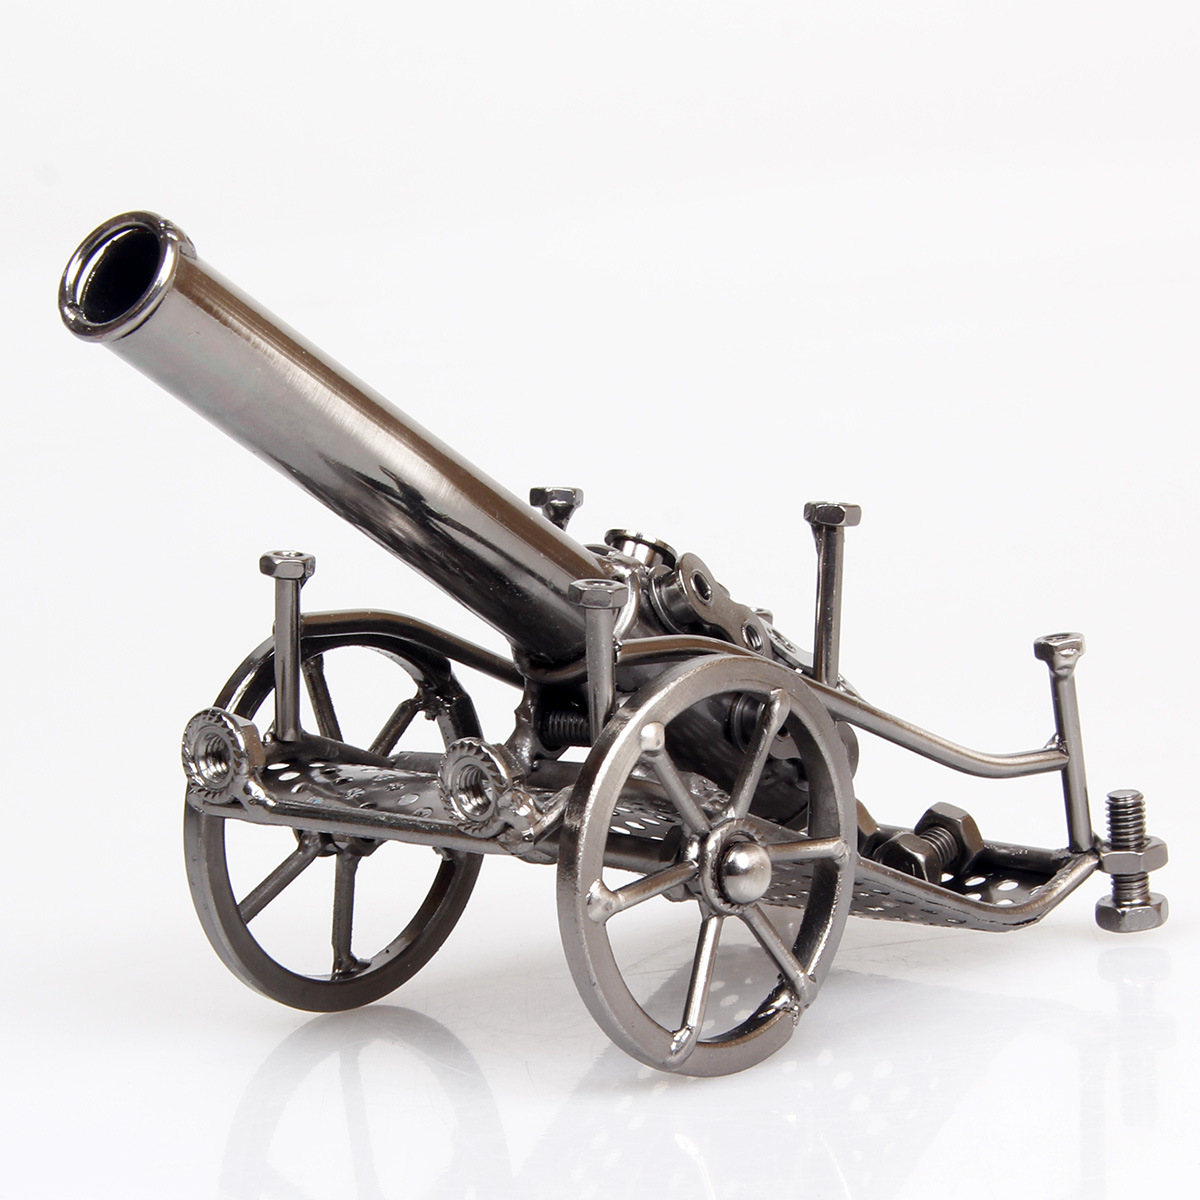 metal crafts Iron cannon model spot sales Wrought iron crafts, gifts ...